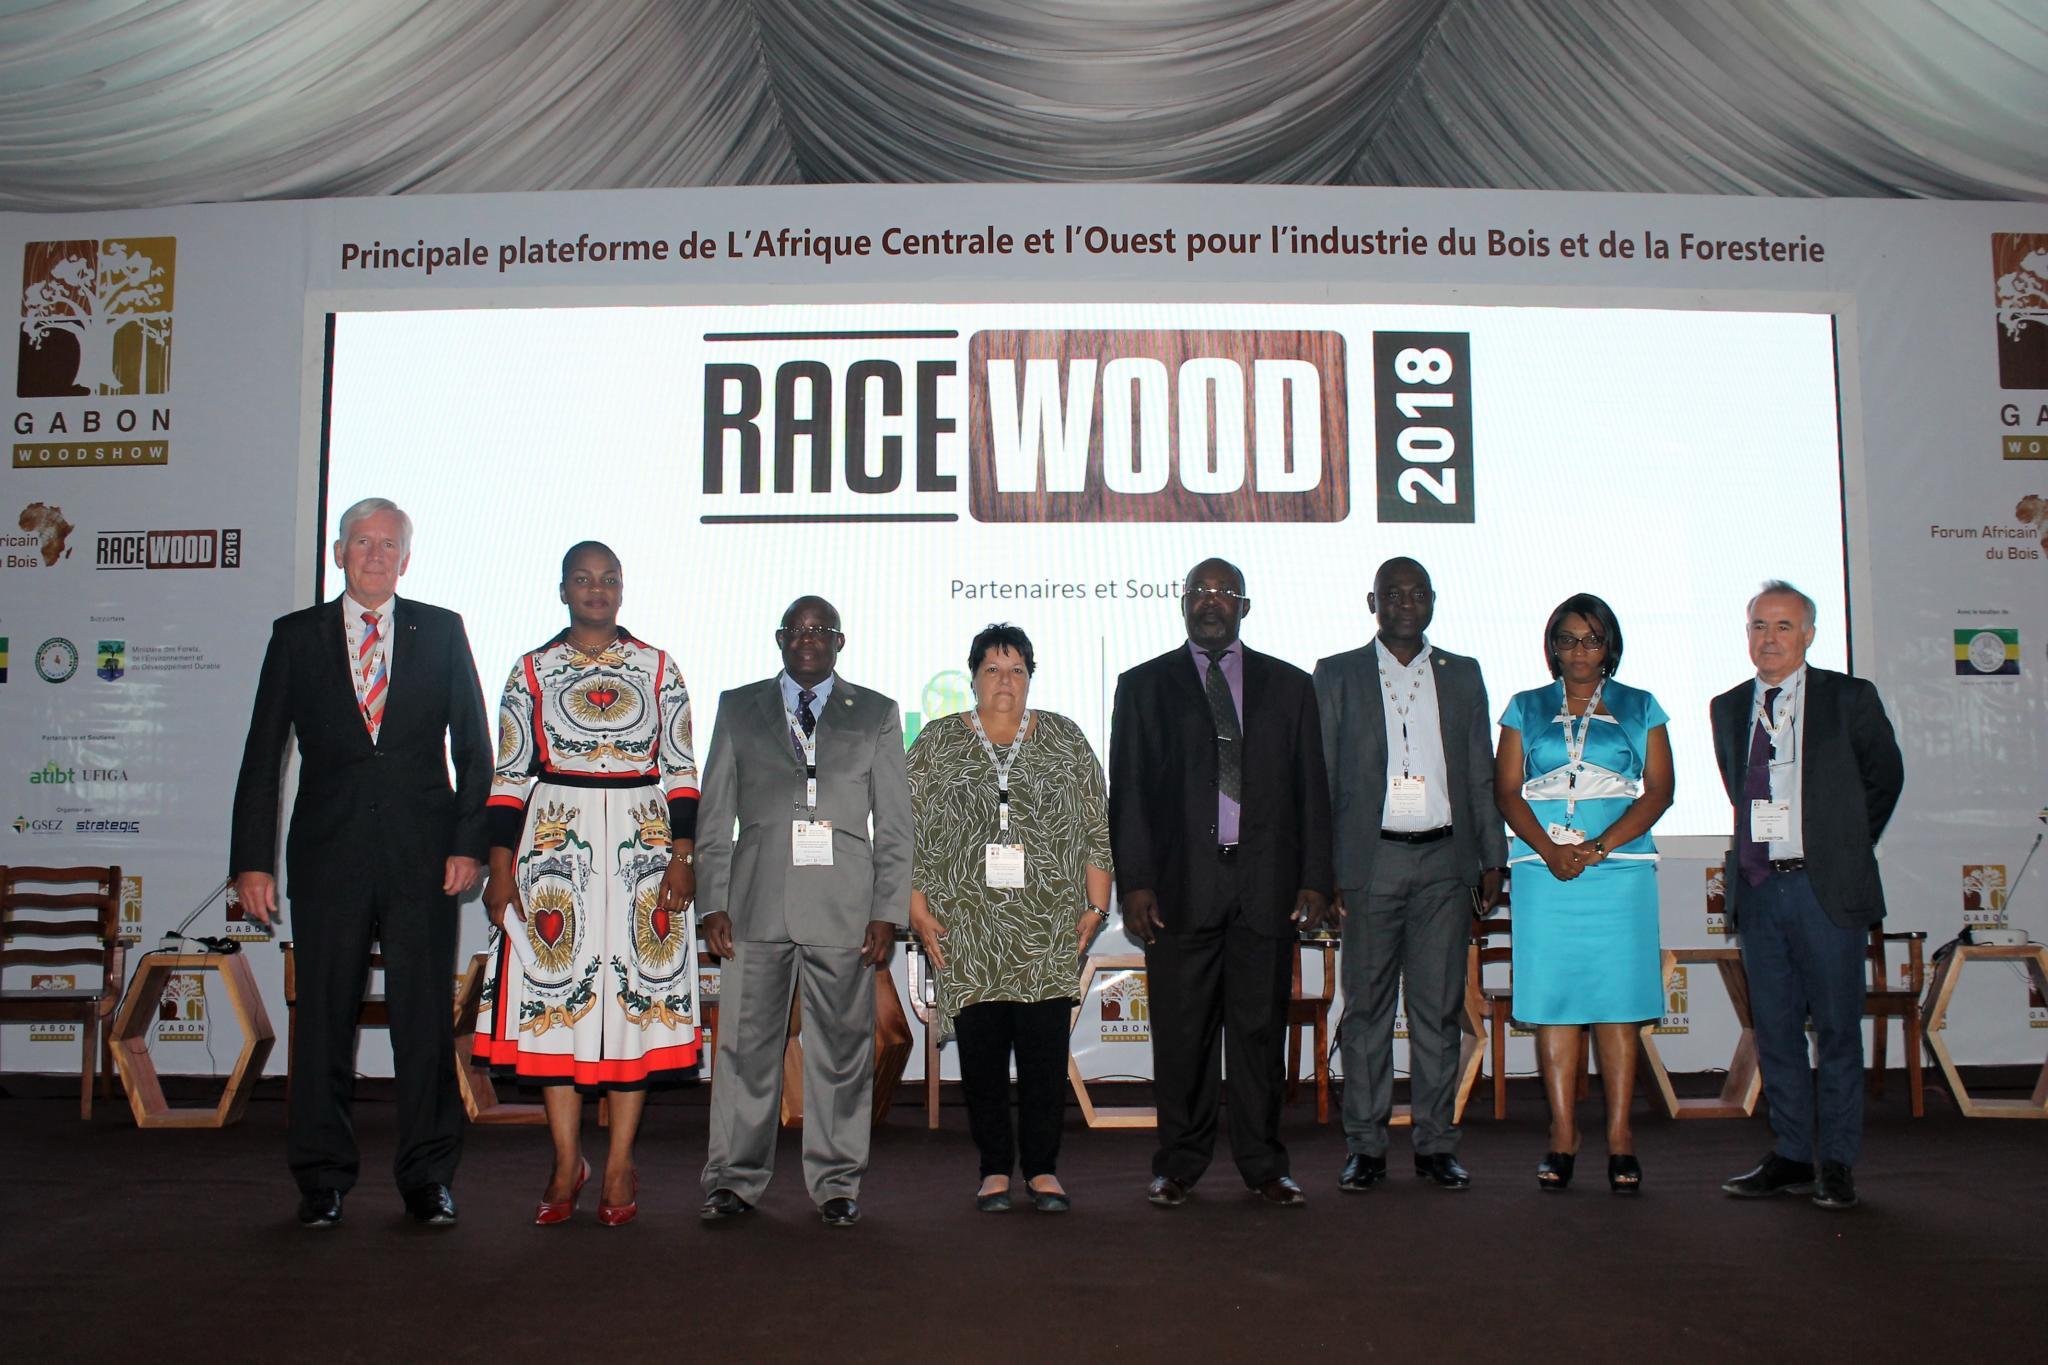 Site de rencontres timber - 10 Great Places To Meet The Woman